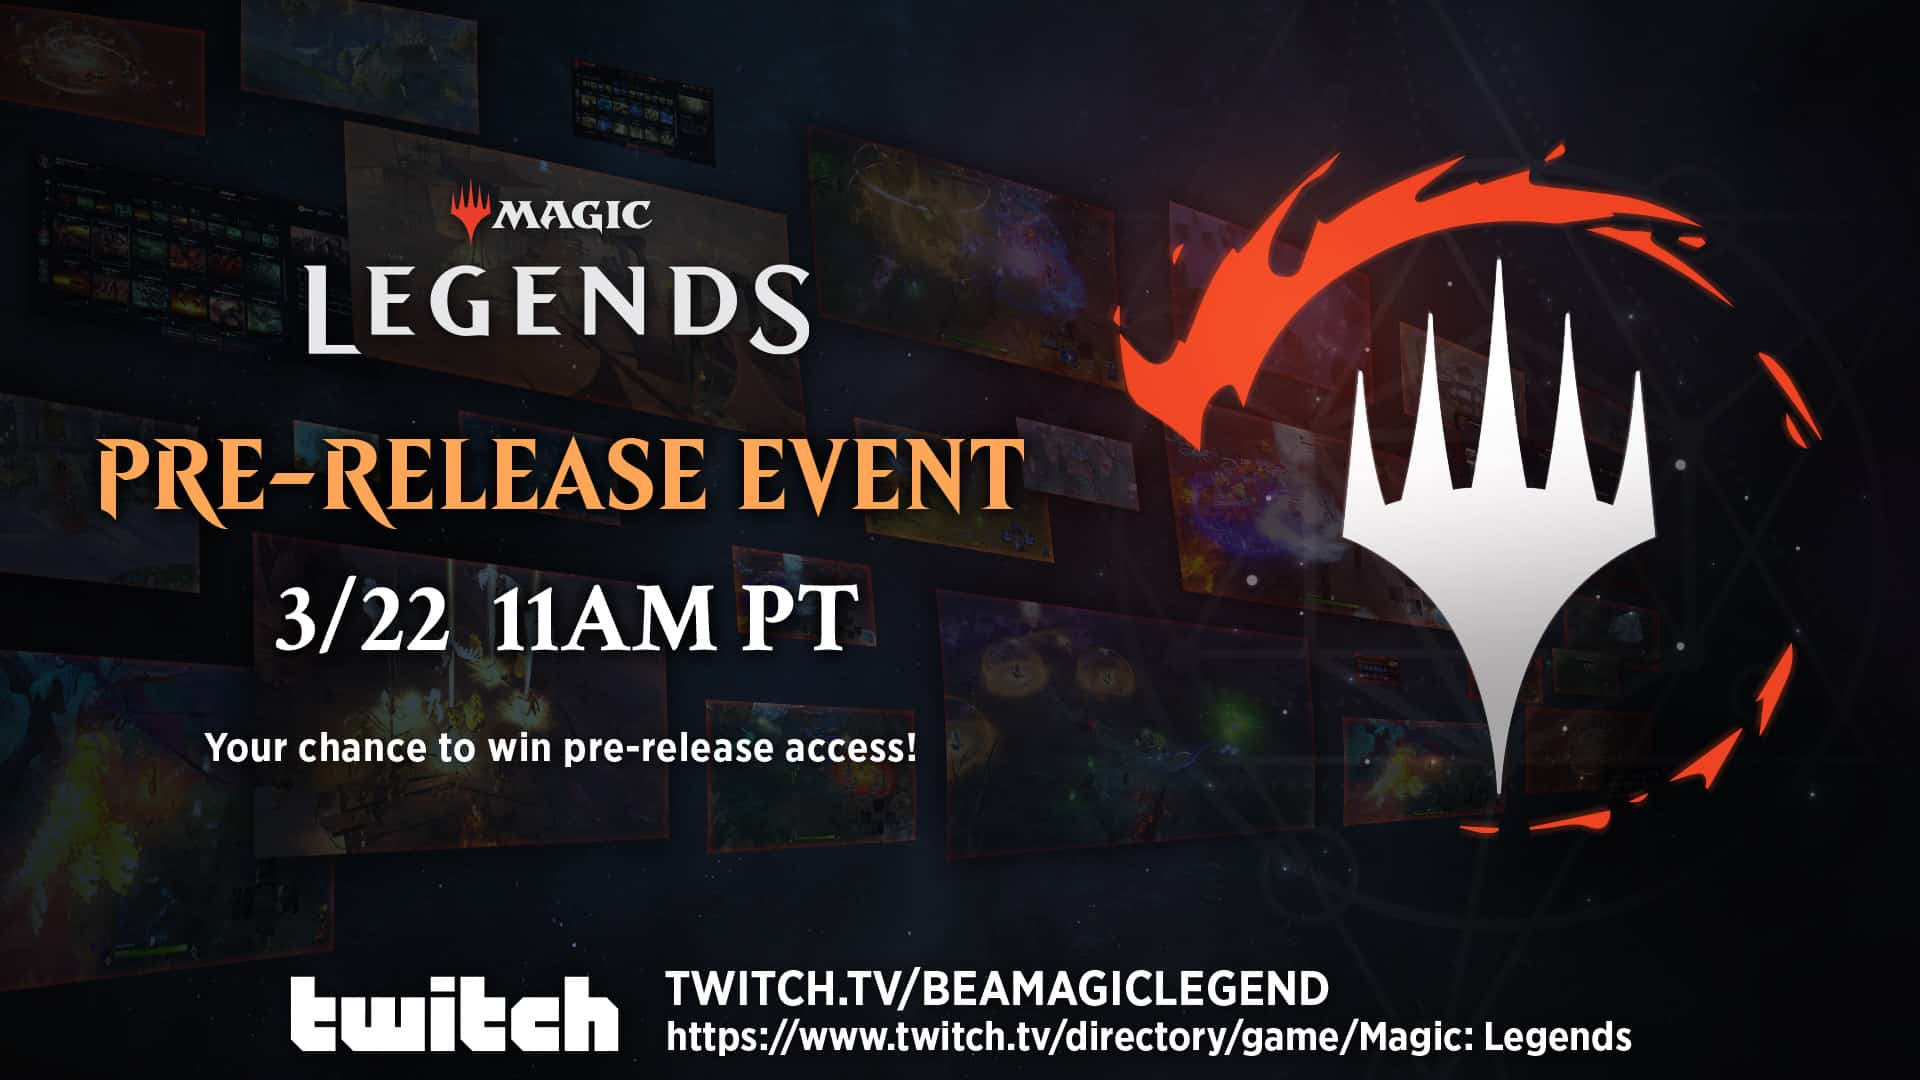 Magic: Legends Pre-Release Event March 22nd - Pre-Load Available Now 3